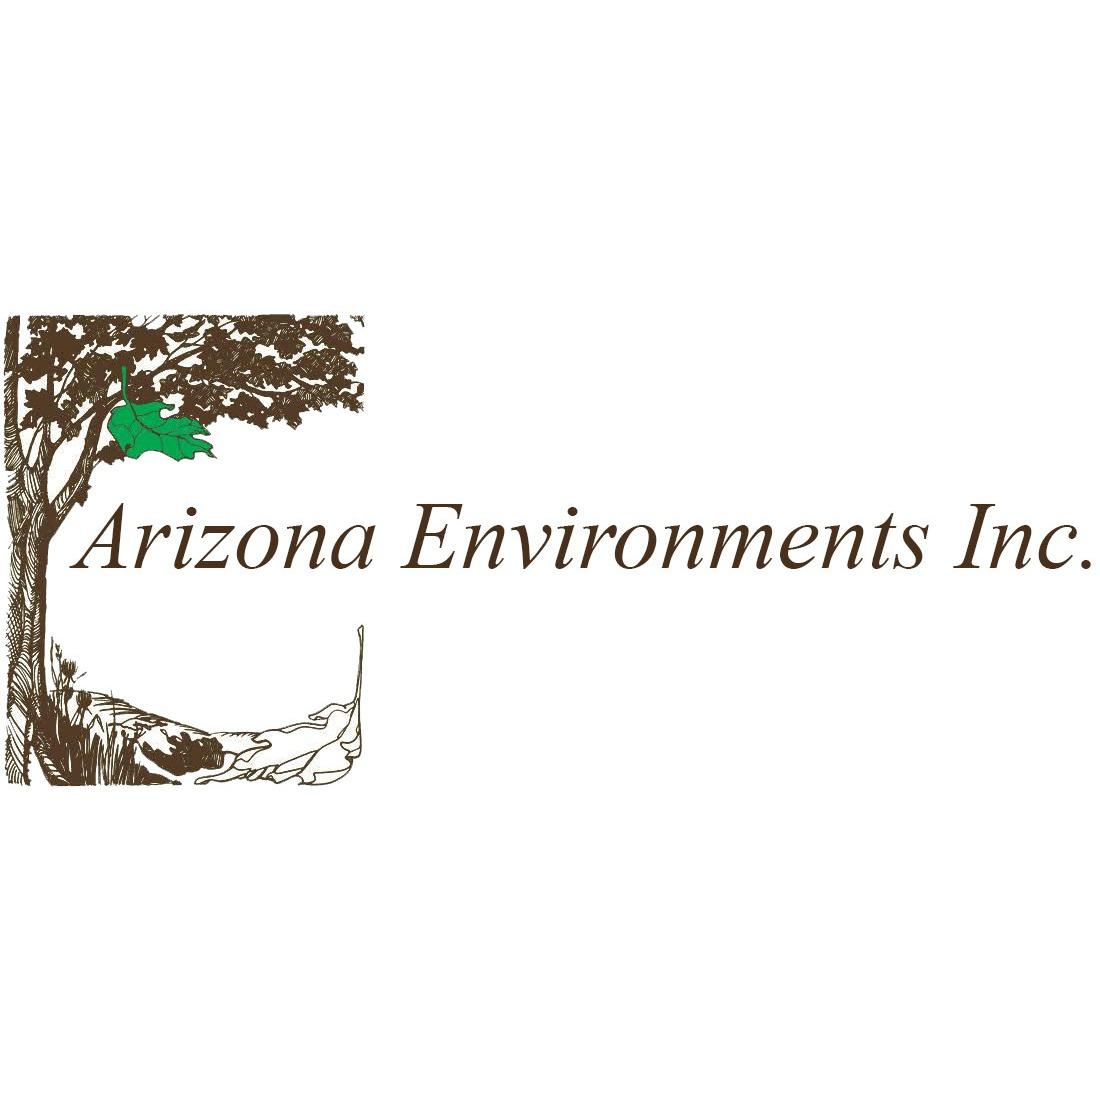 Arizona Environments Inc